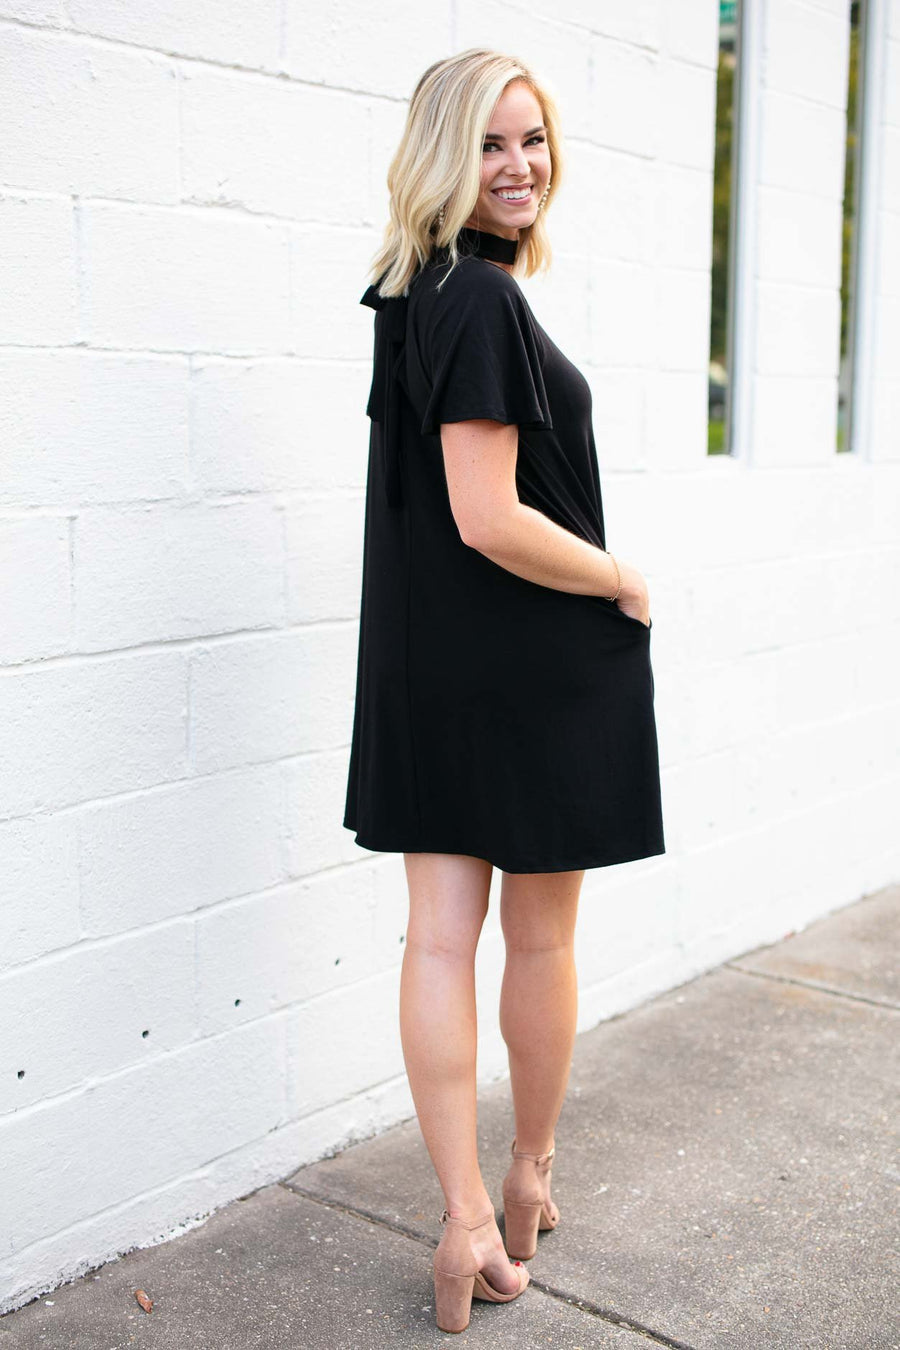 Dresses Hours with You Cut Out Black Dress with Pockets - Lotus Boutique